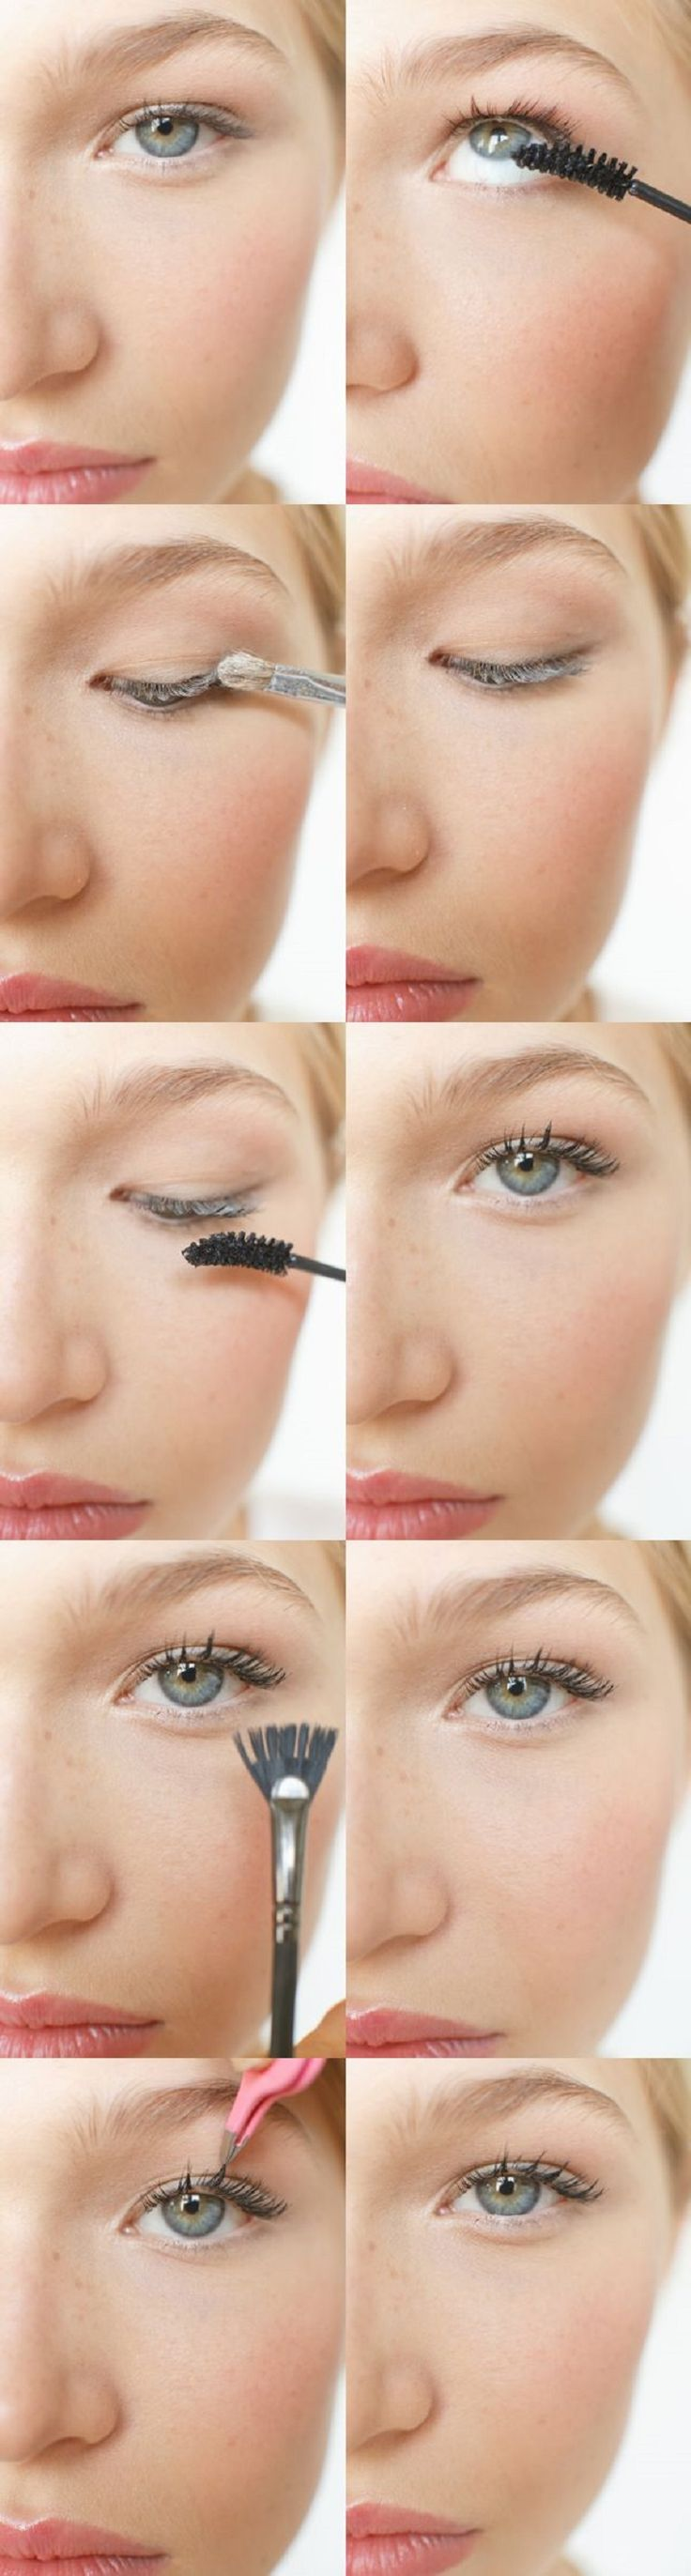 How-To Apply Mascara Tutorial - 8 Crucial Makeup Tutorials You Need to Know | GleamItUp